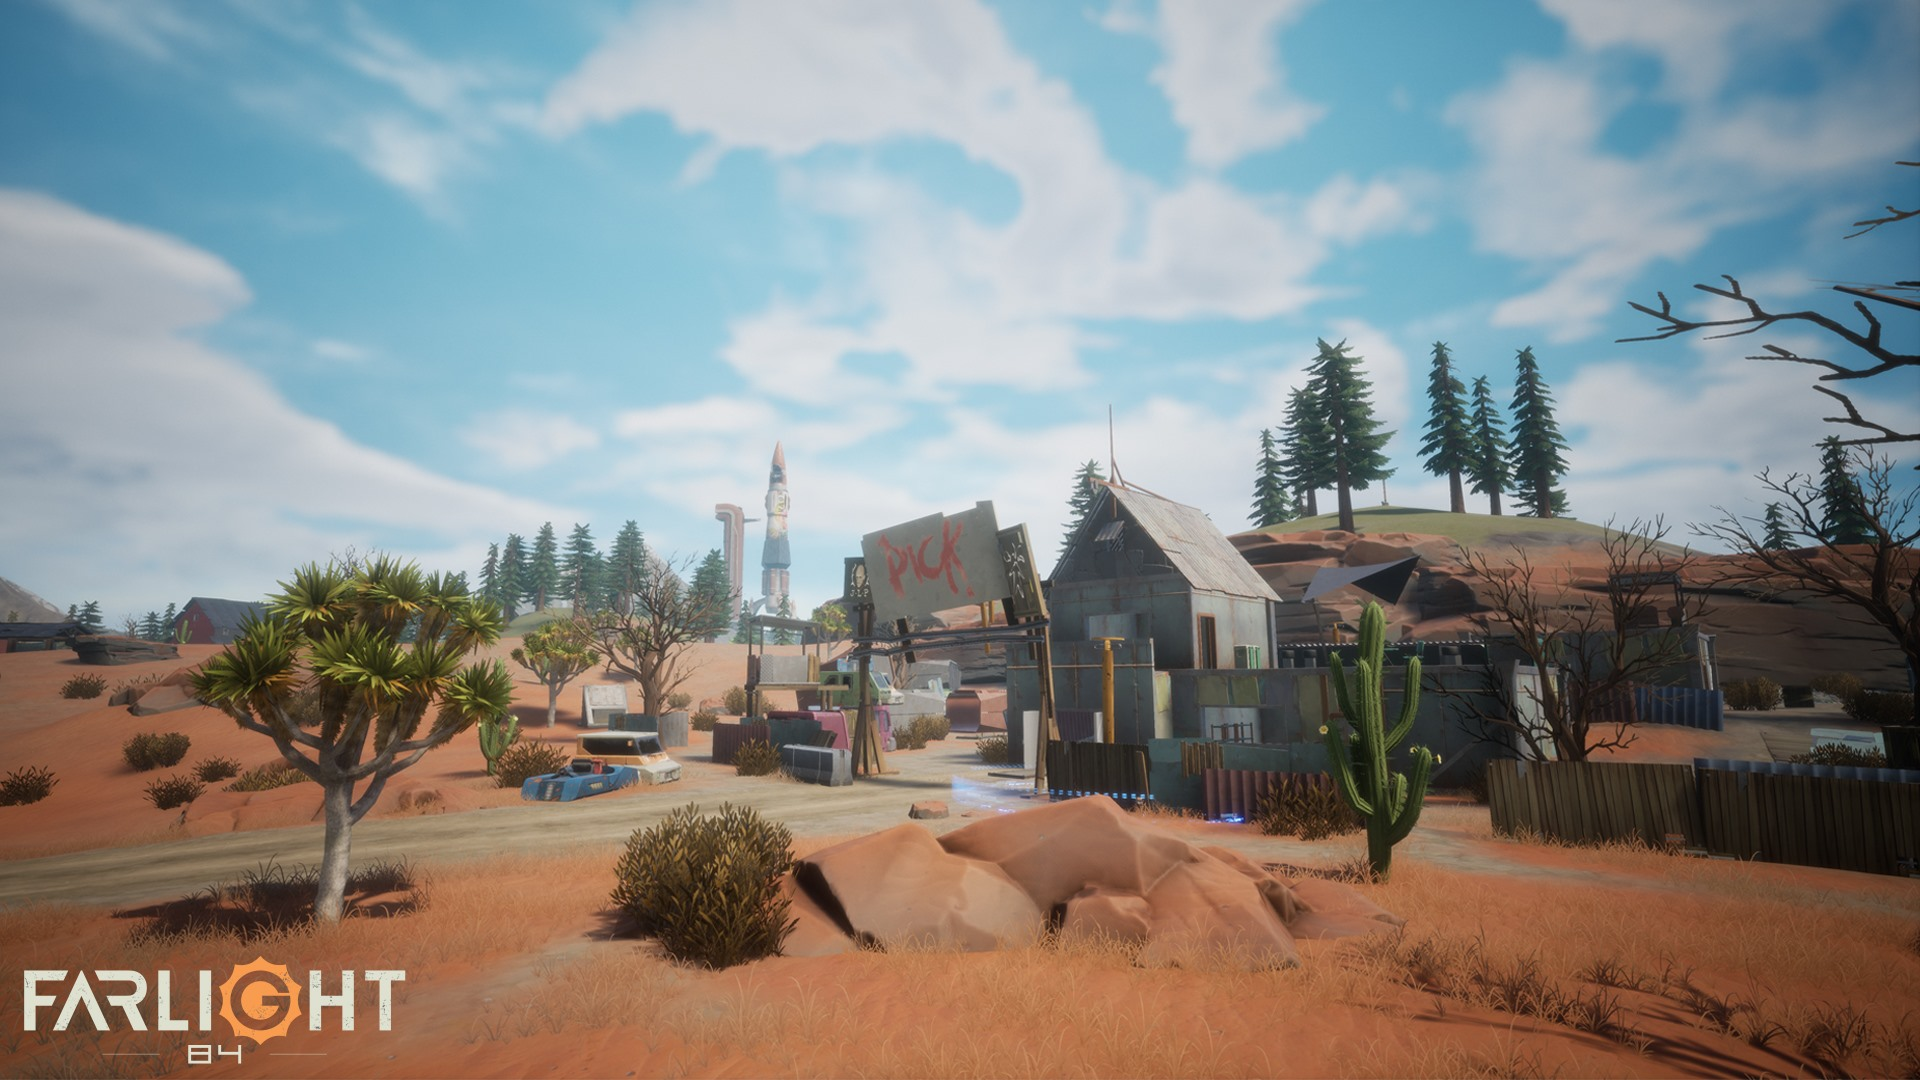 Lilith Games' Farlight 84 is Spicing Up the Battle Royale Genre with Crafting, Racing, and Other Wacky Mechanics